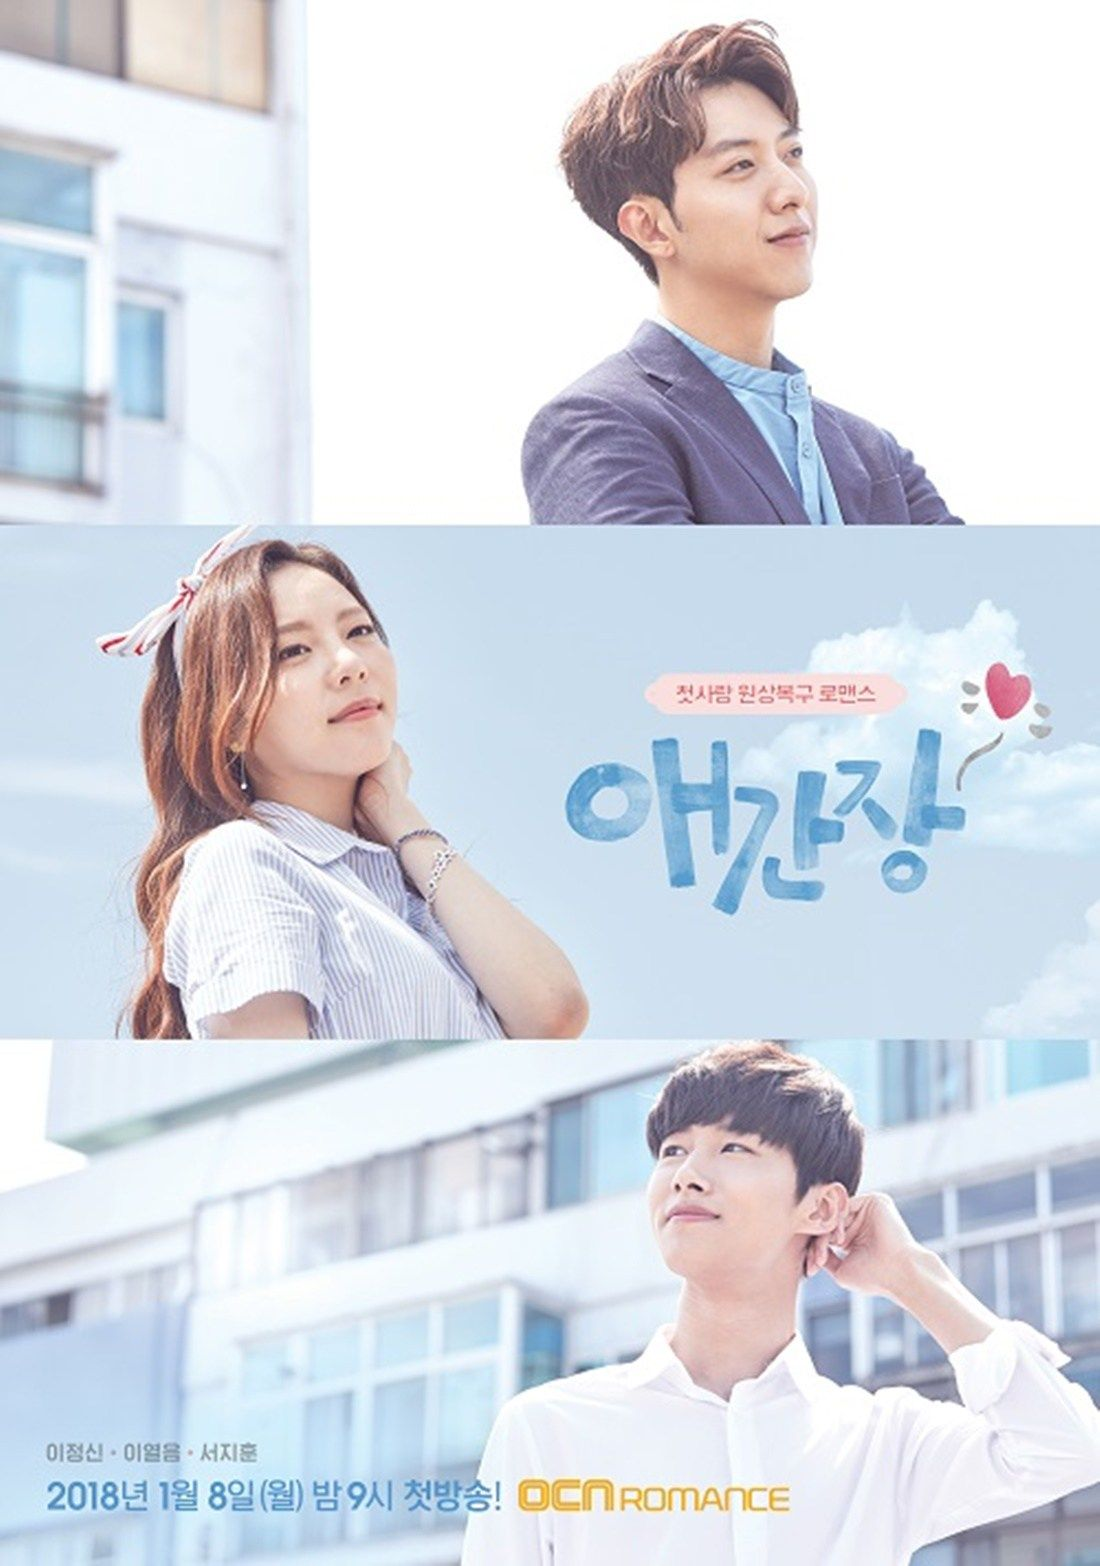 My First Love (Korean Drama) 2018 New korean drama